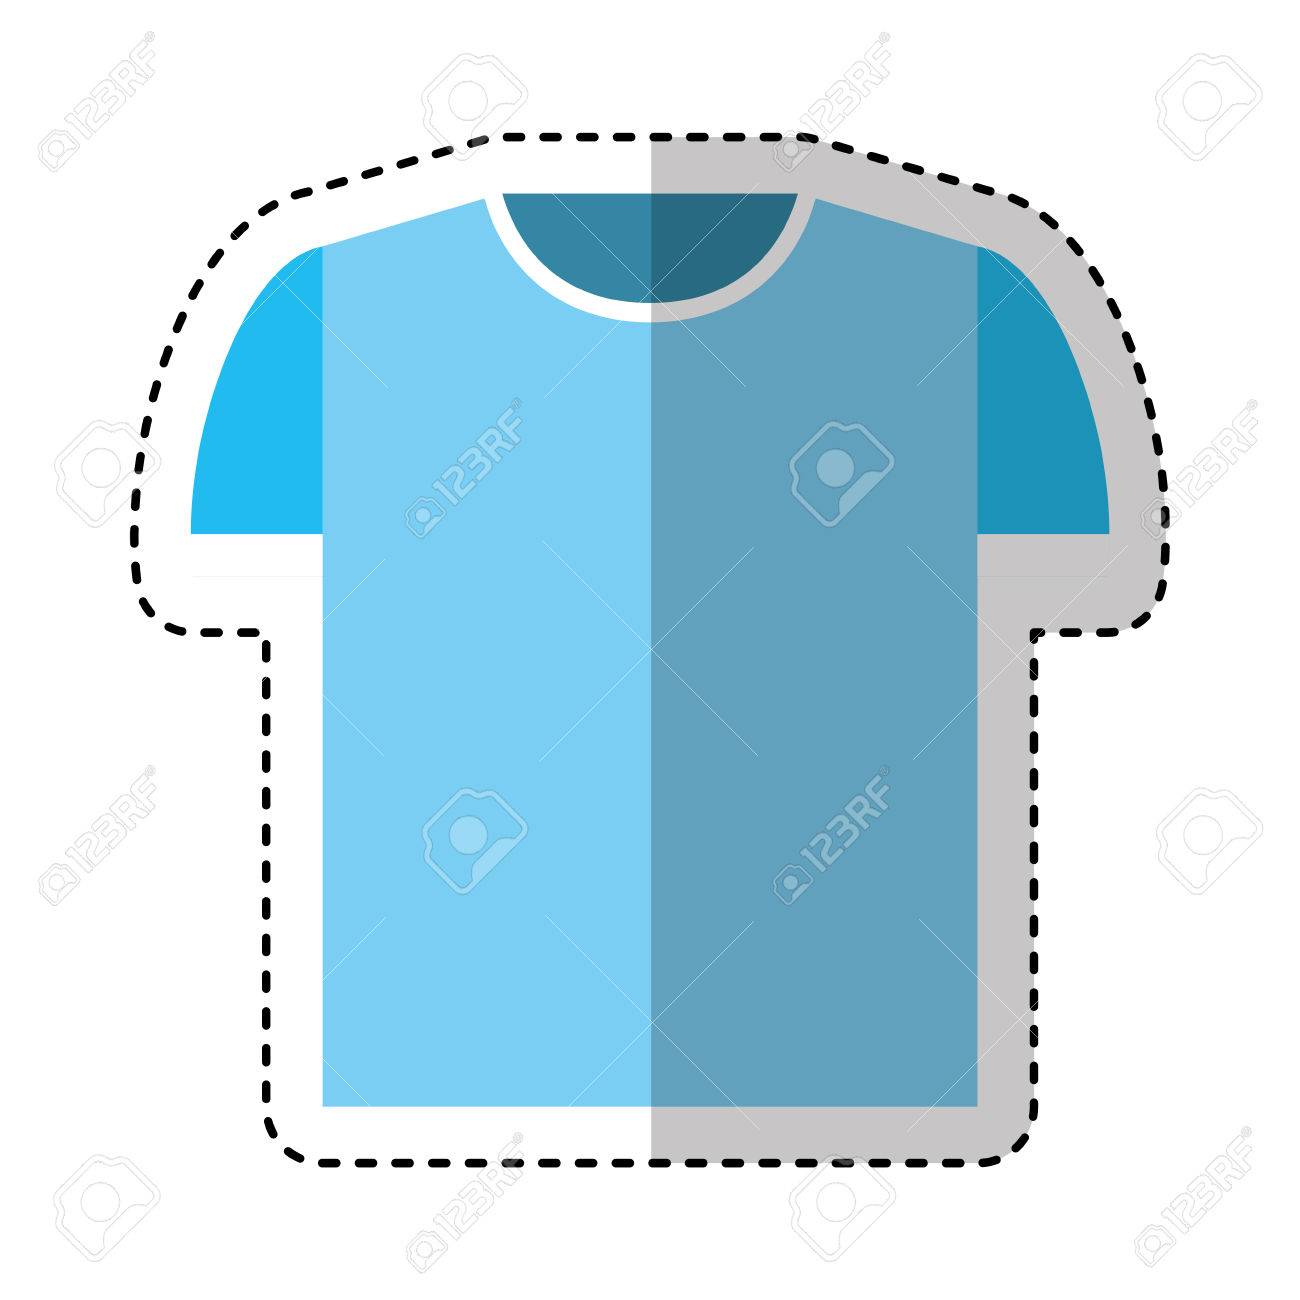 f2f2d1105 shirt uniform uruguay team vector illustration design Stock Vector -  73435216